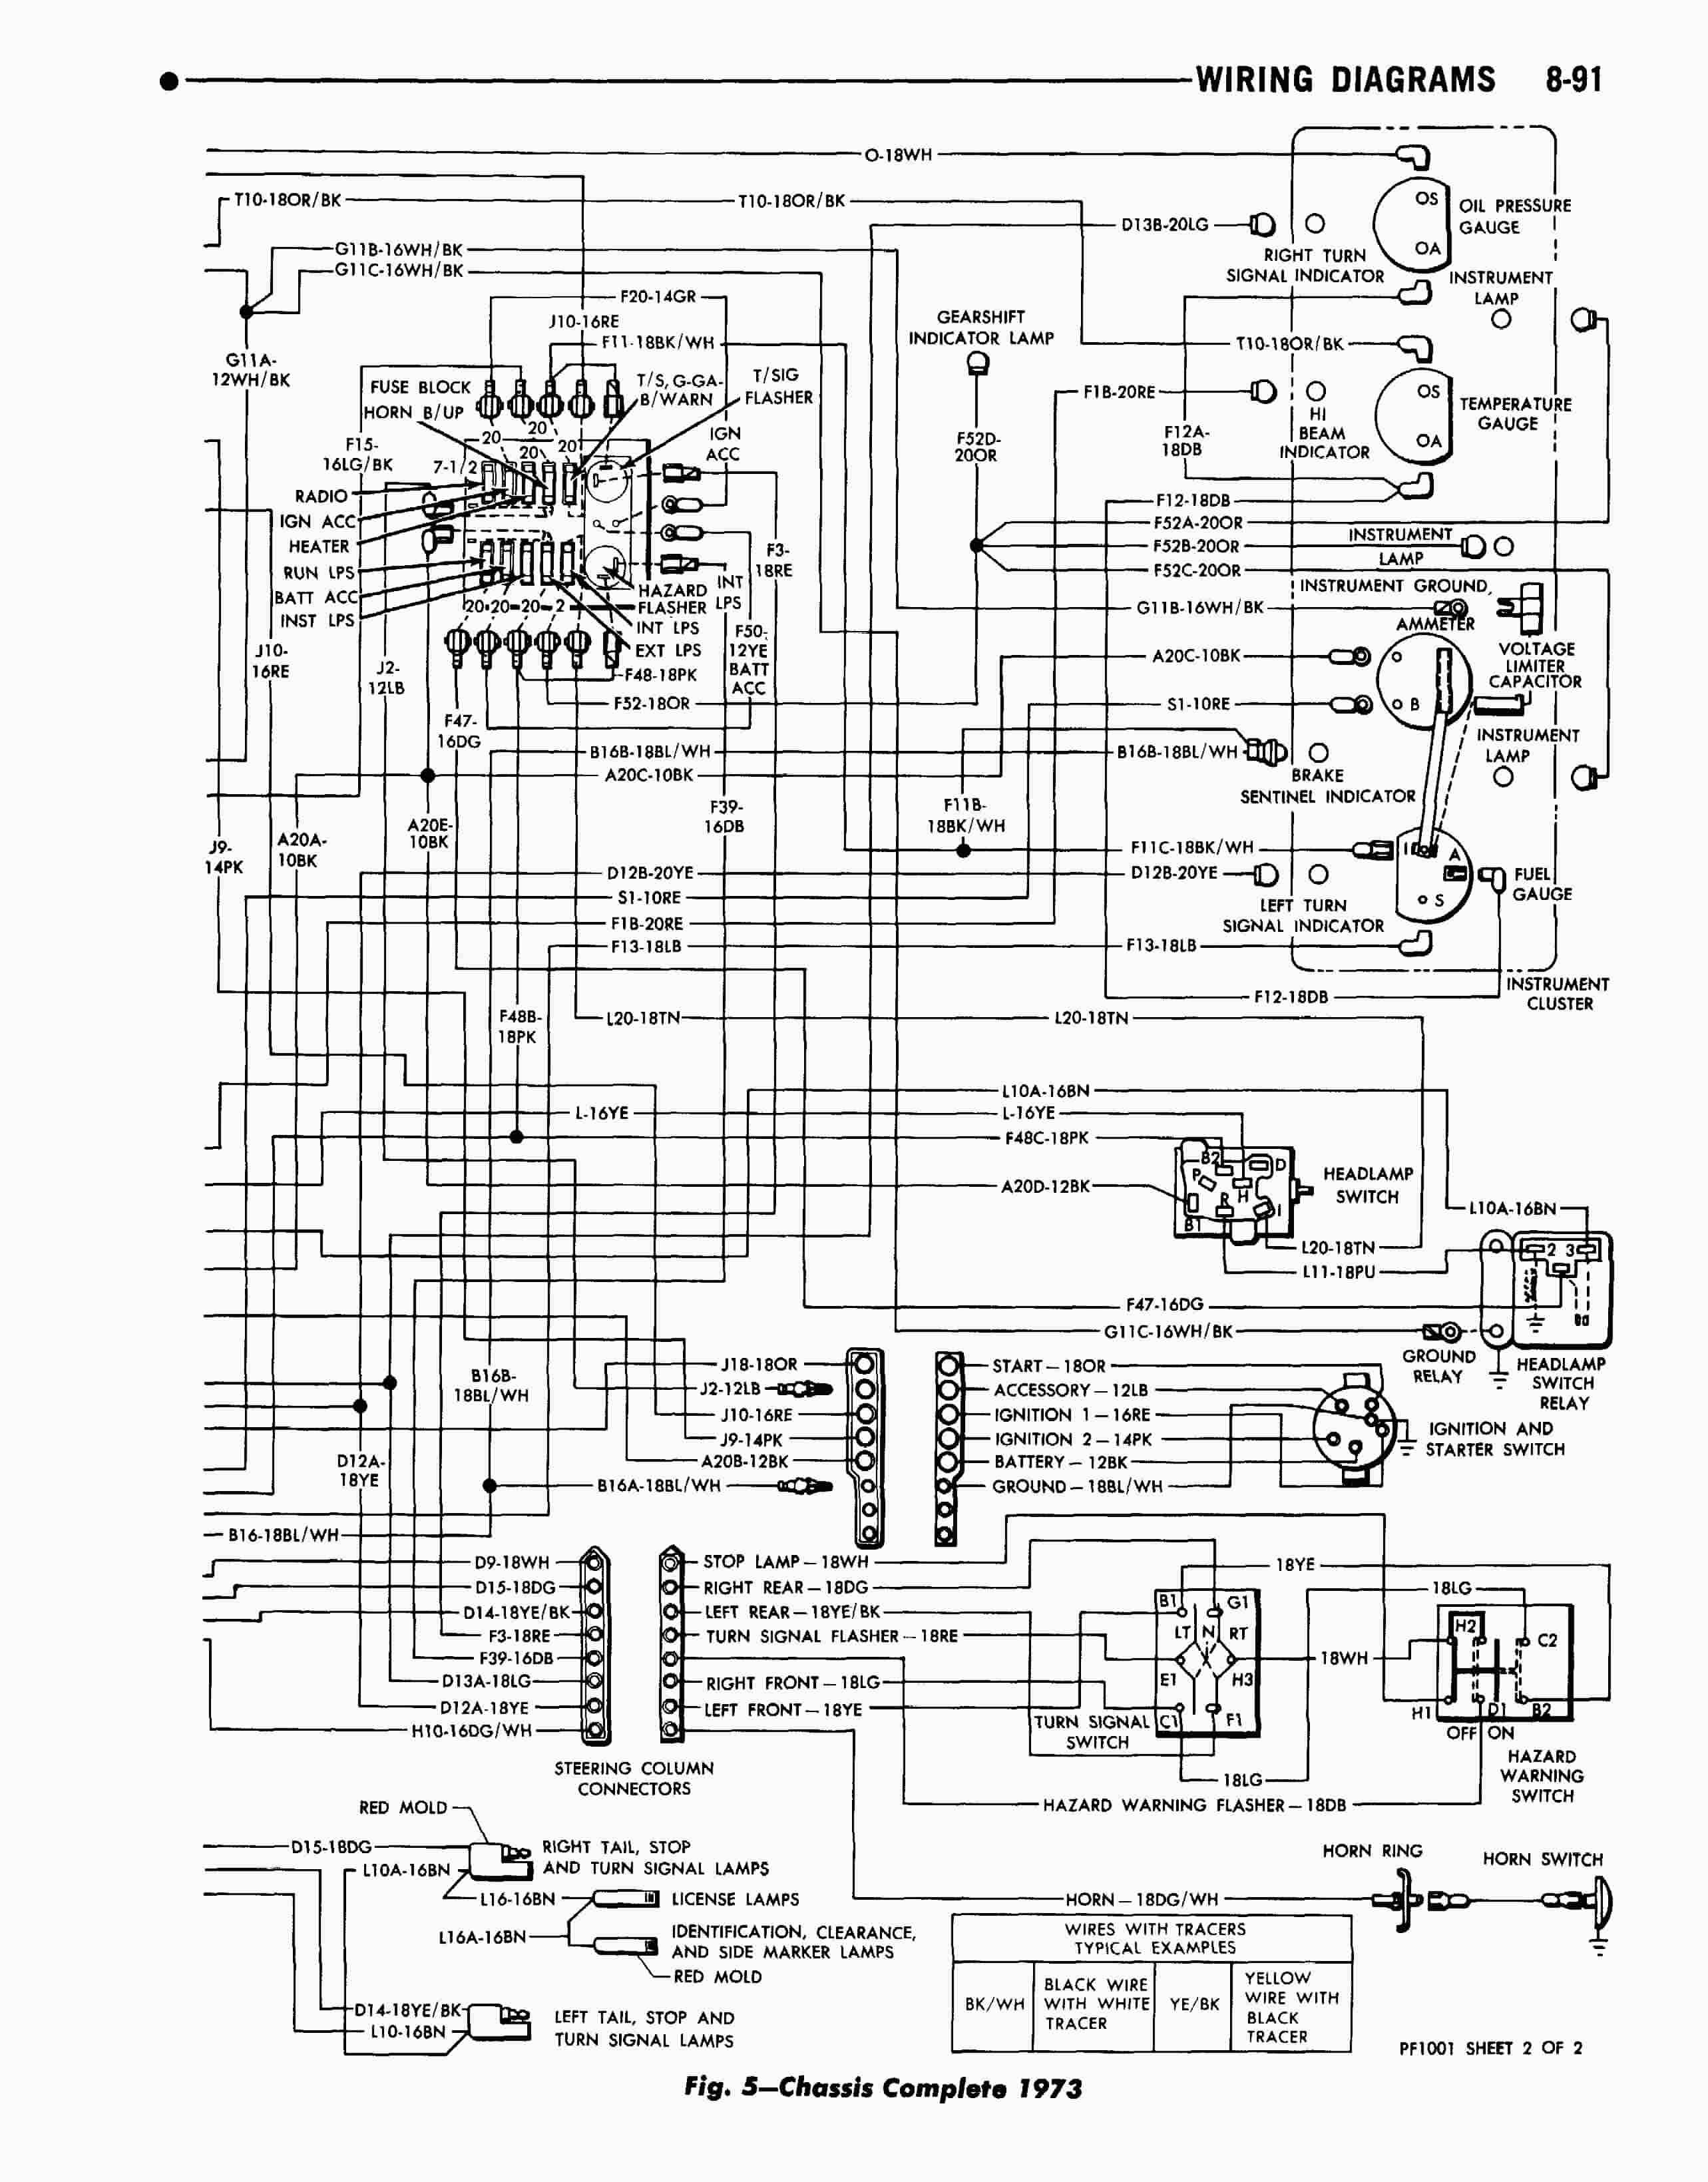 hight resolution of 2012 ford f53 fuse diagram wiring diagram ops 2013 ford f53 fuse diagram